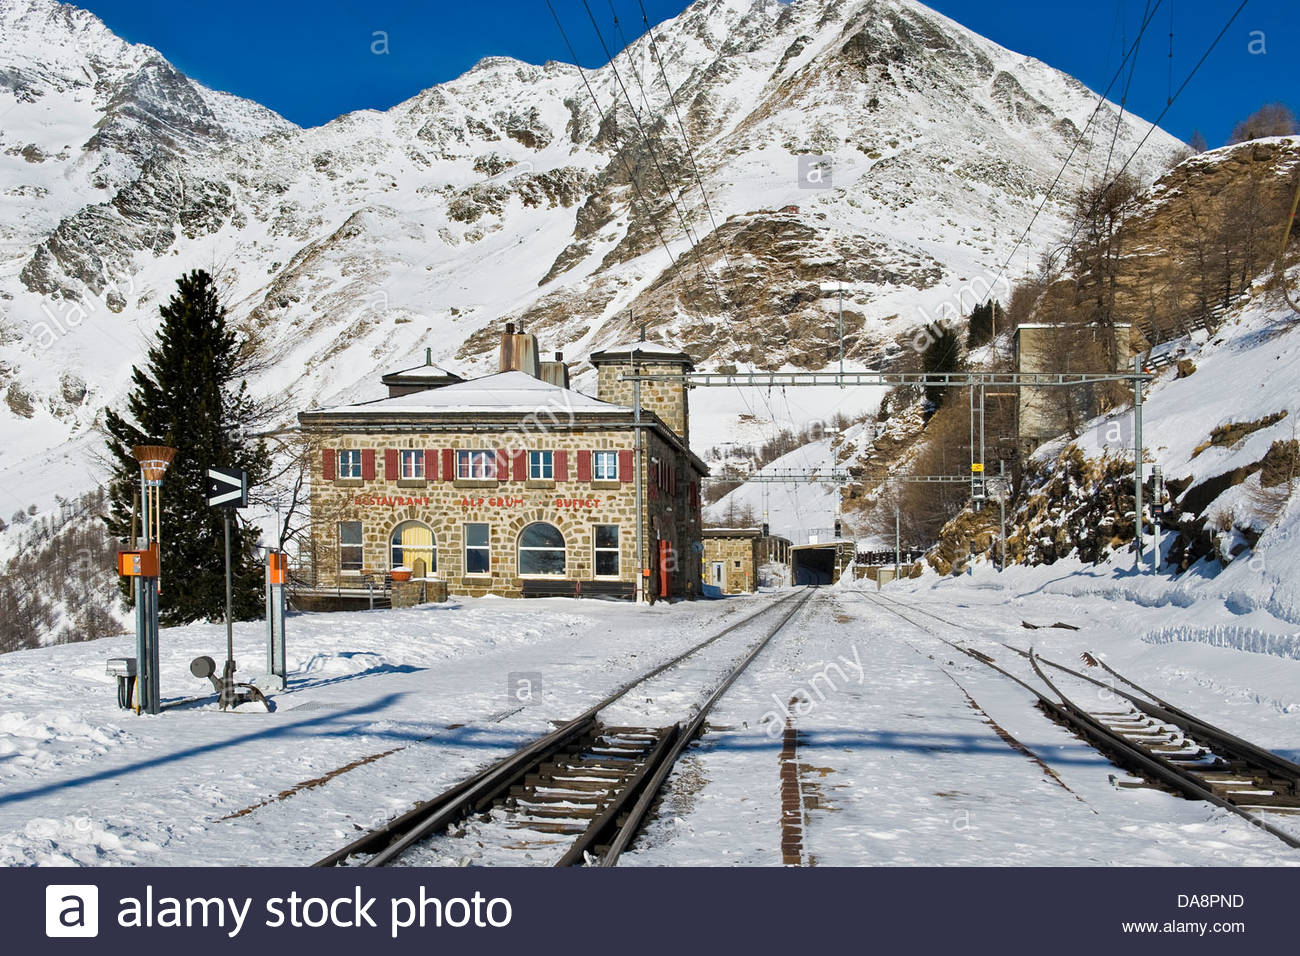 Alp Grum resort,Bernina express,Switzerland - Stock Image